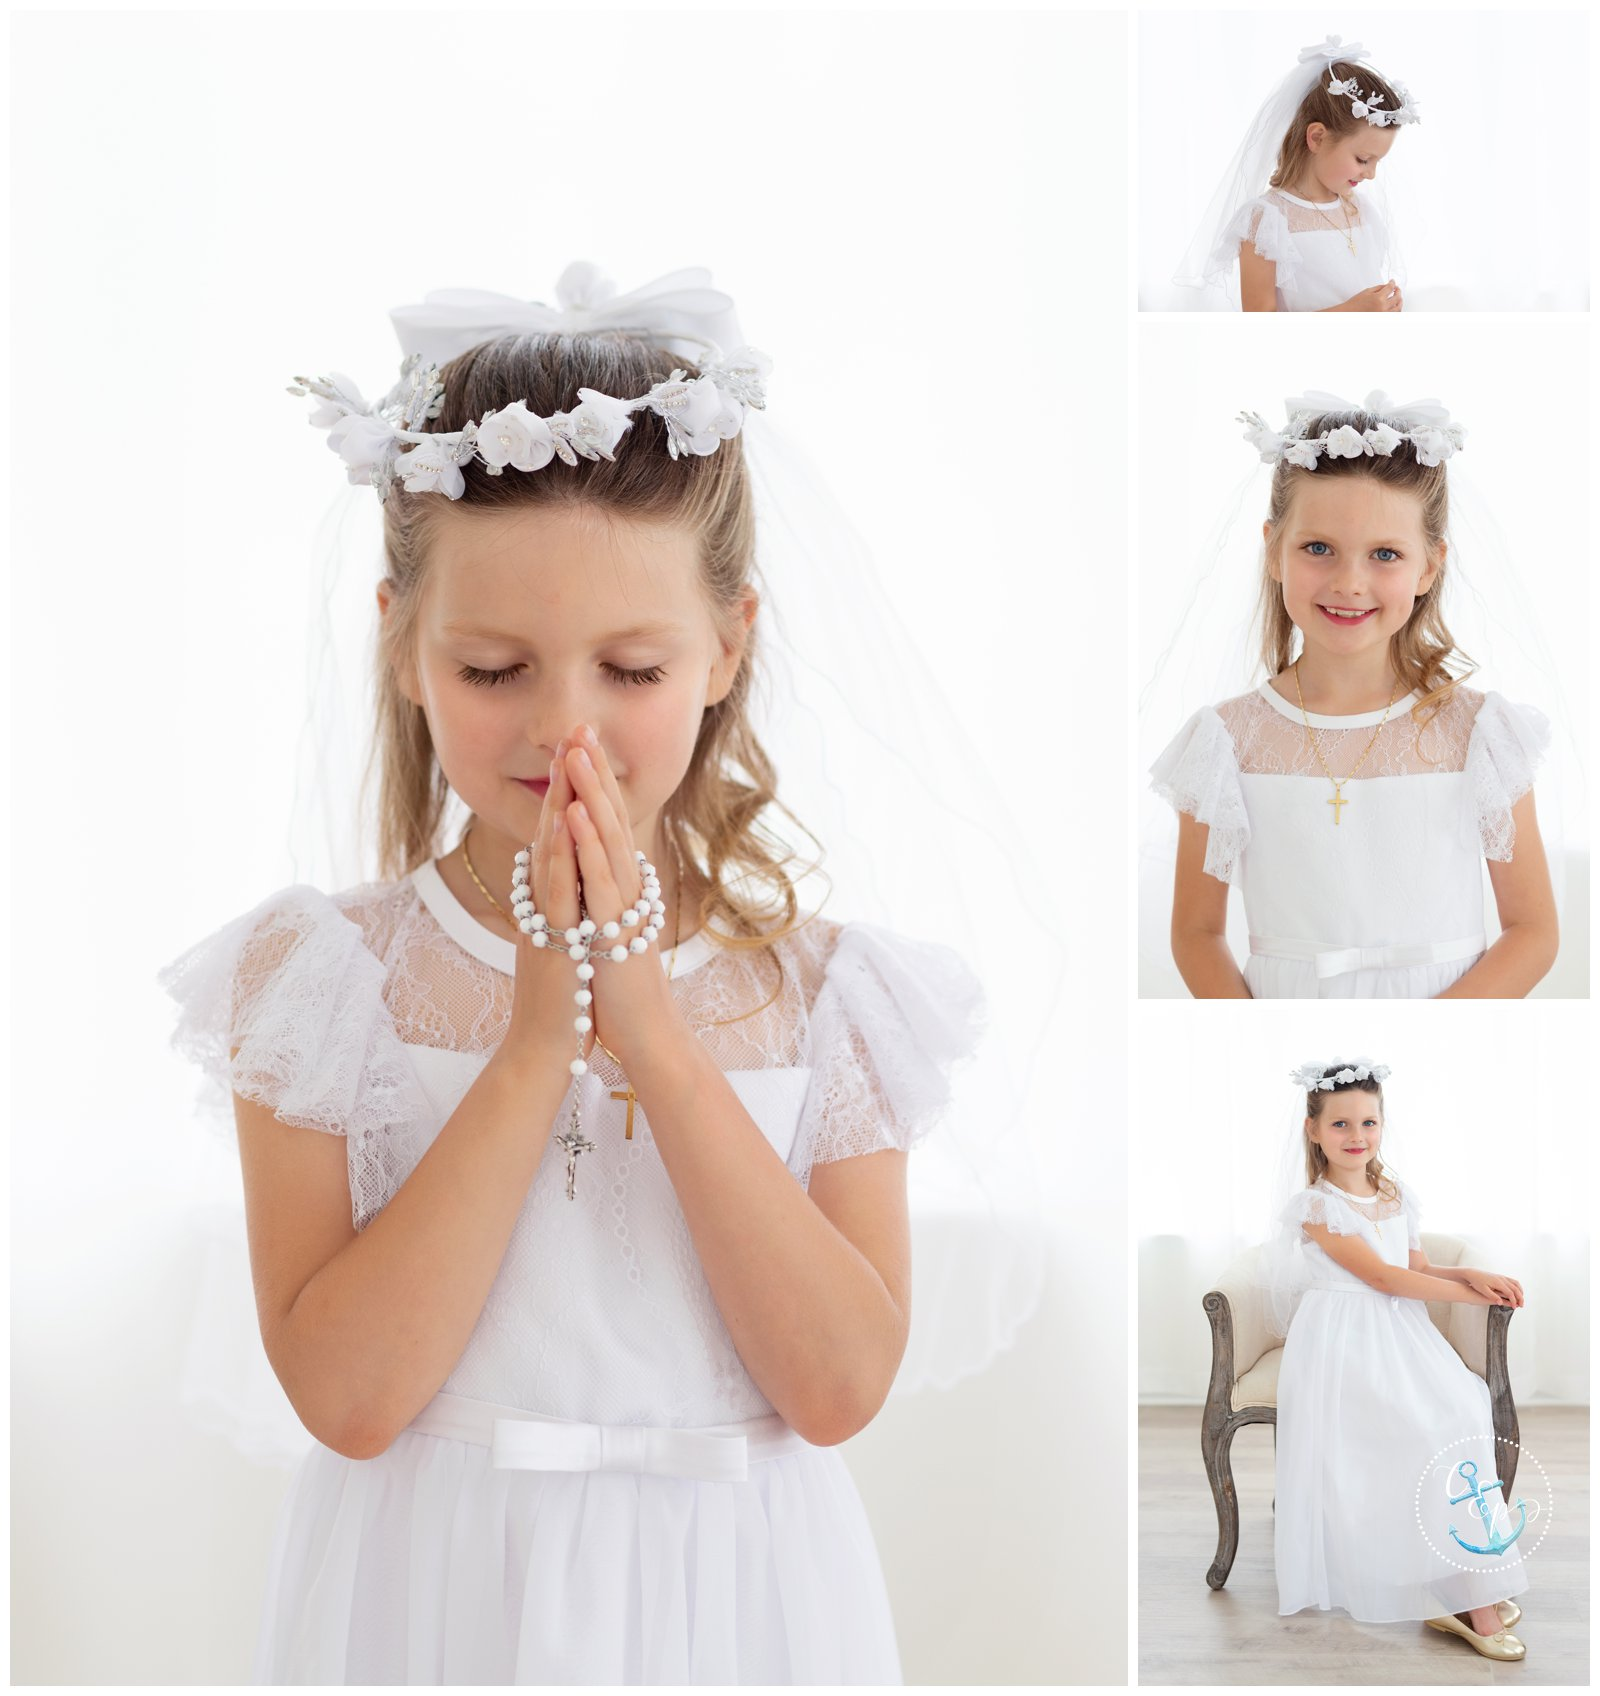 First Communion girl collage, First Communion mini session Frederick MD, First Communion portrait with rosary, Cristina Elisa Photography LLC